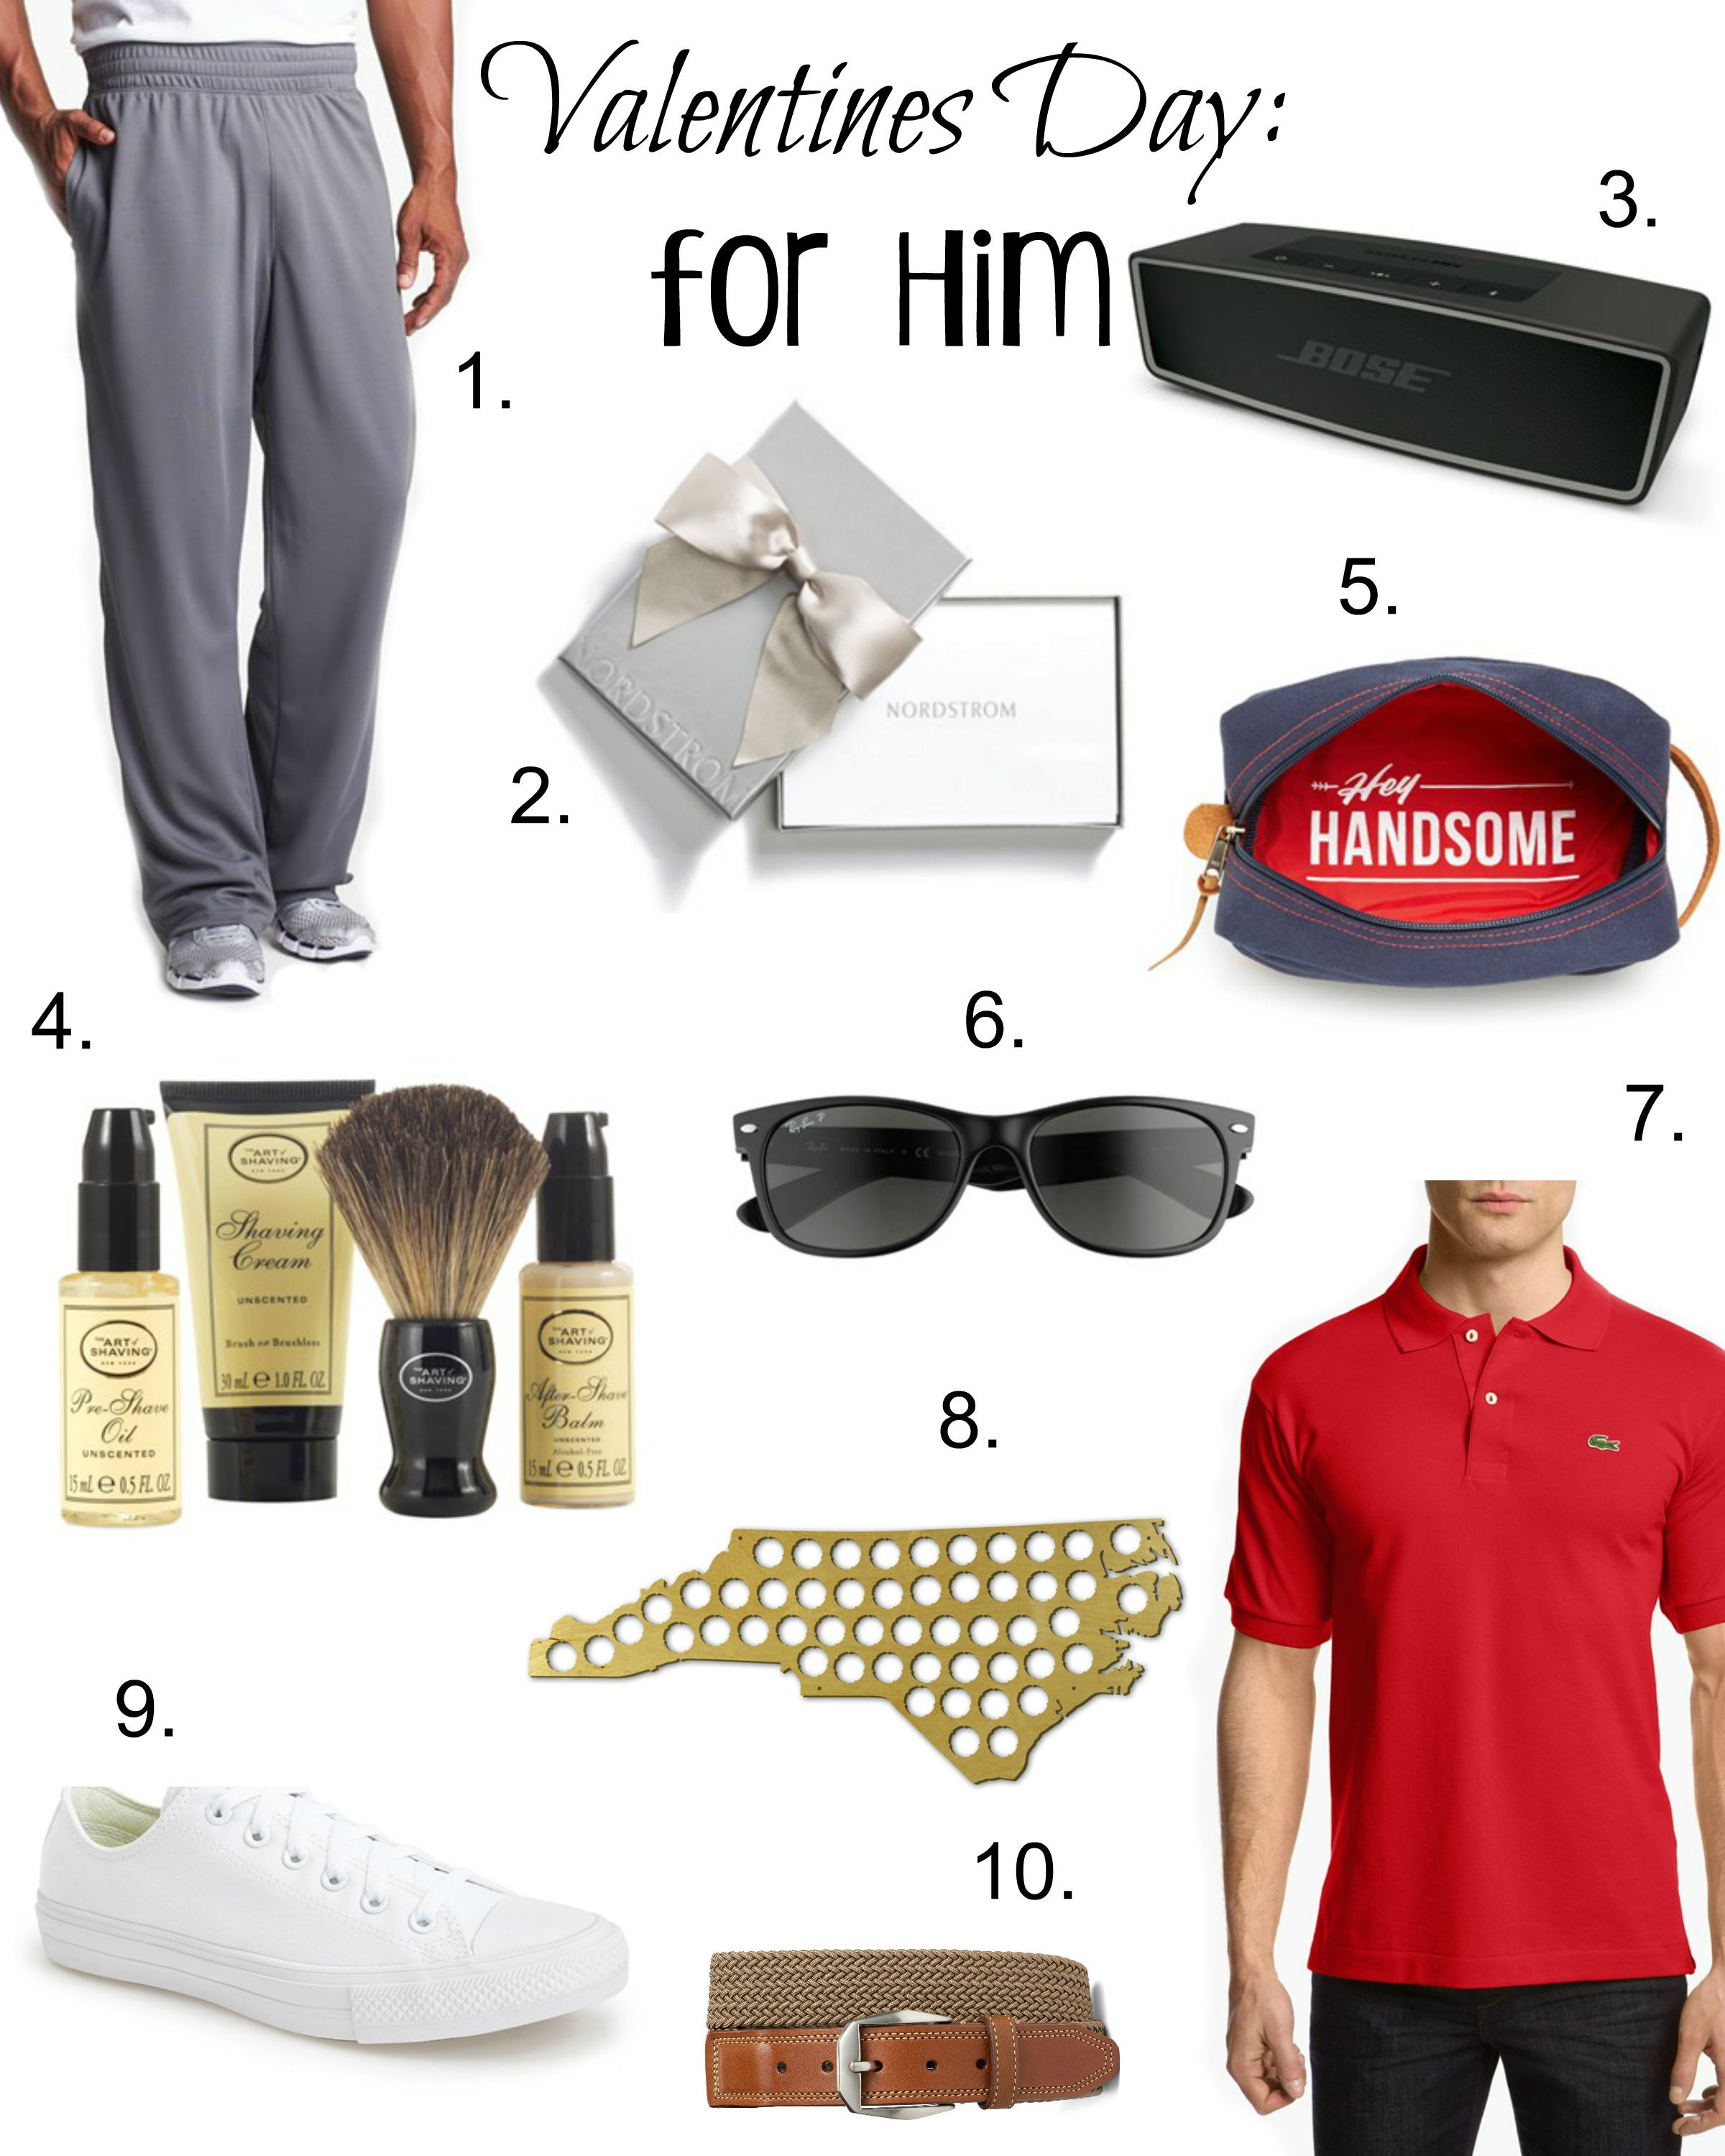 10 valentines day gifts for him coffee beans and bobby pins Best valentine gifts for him